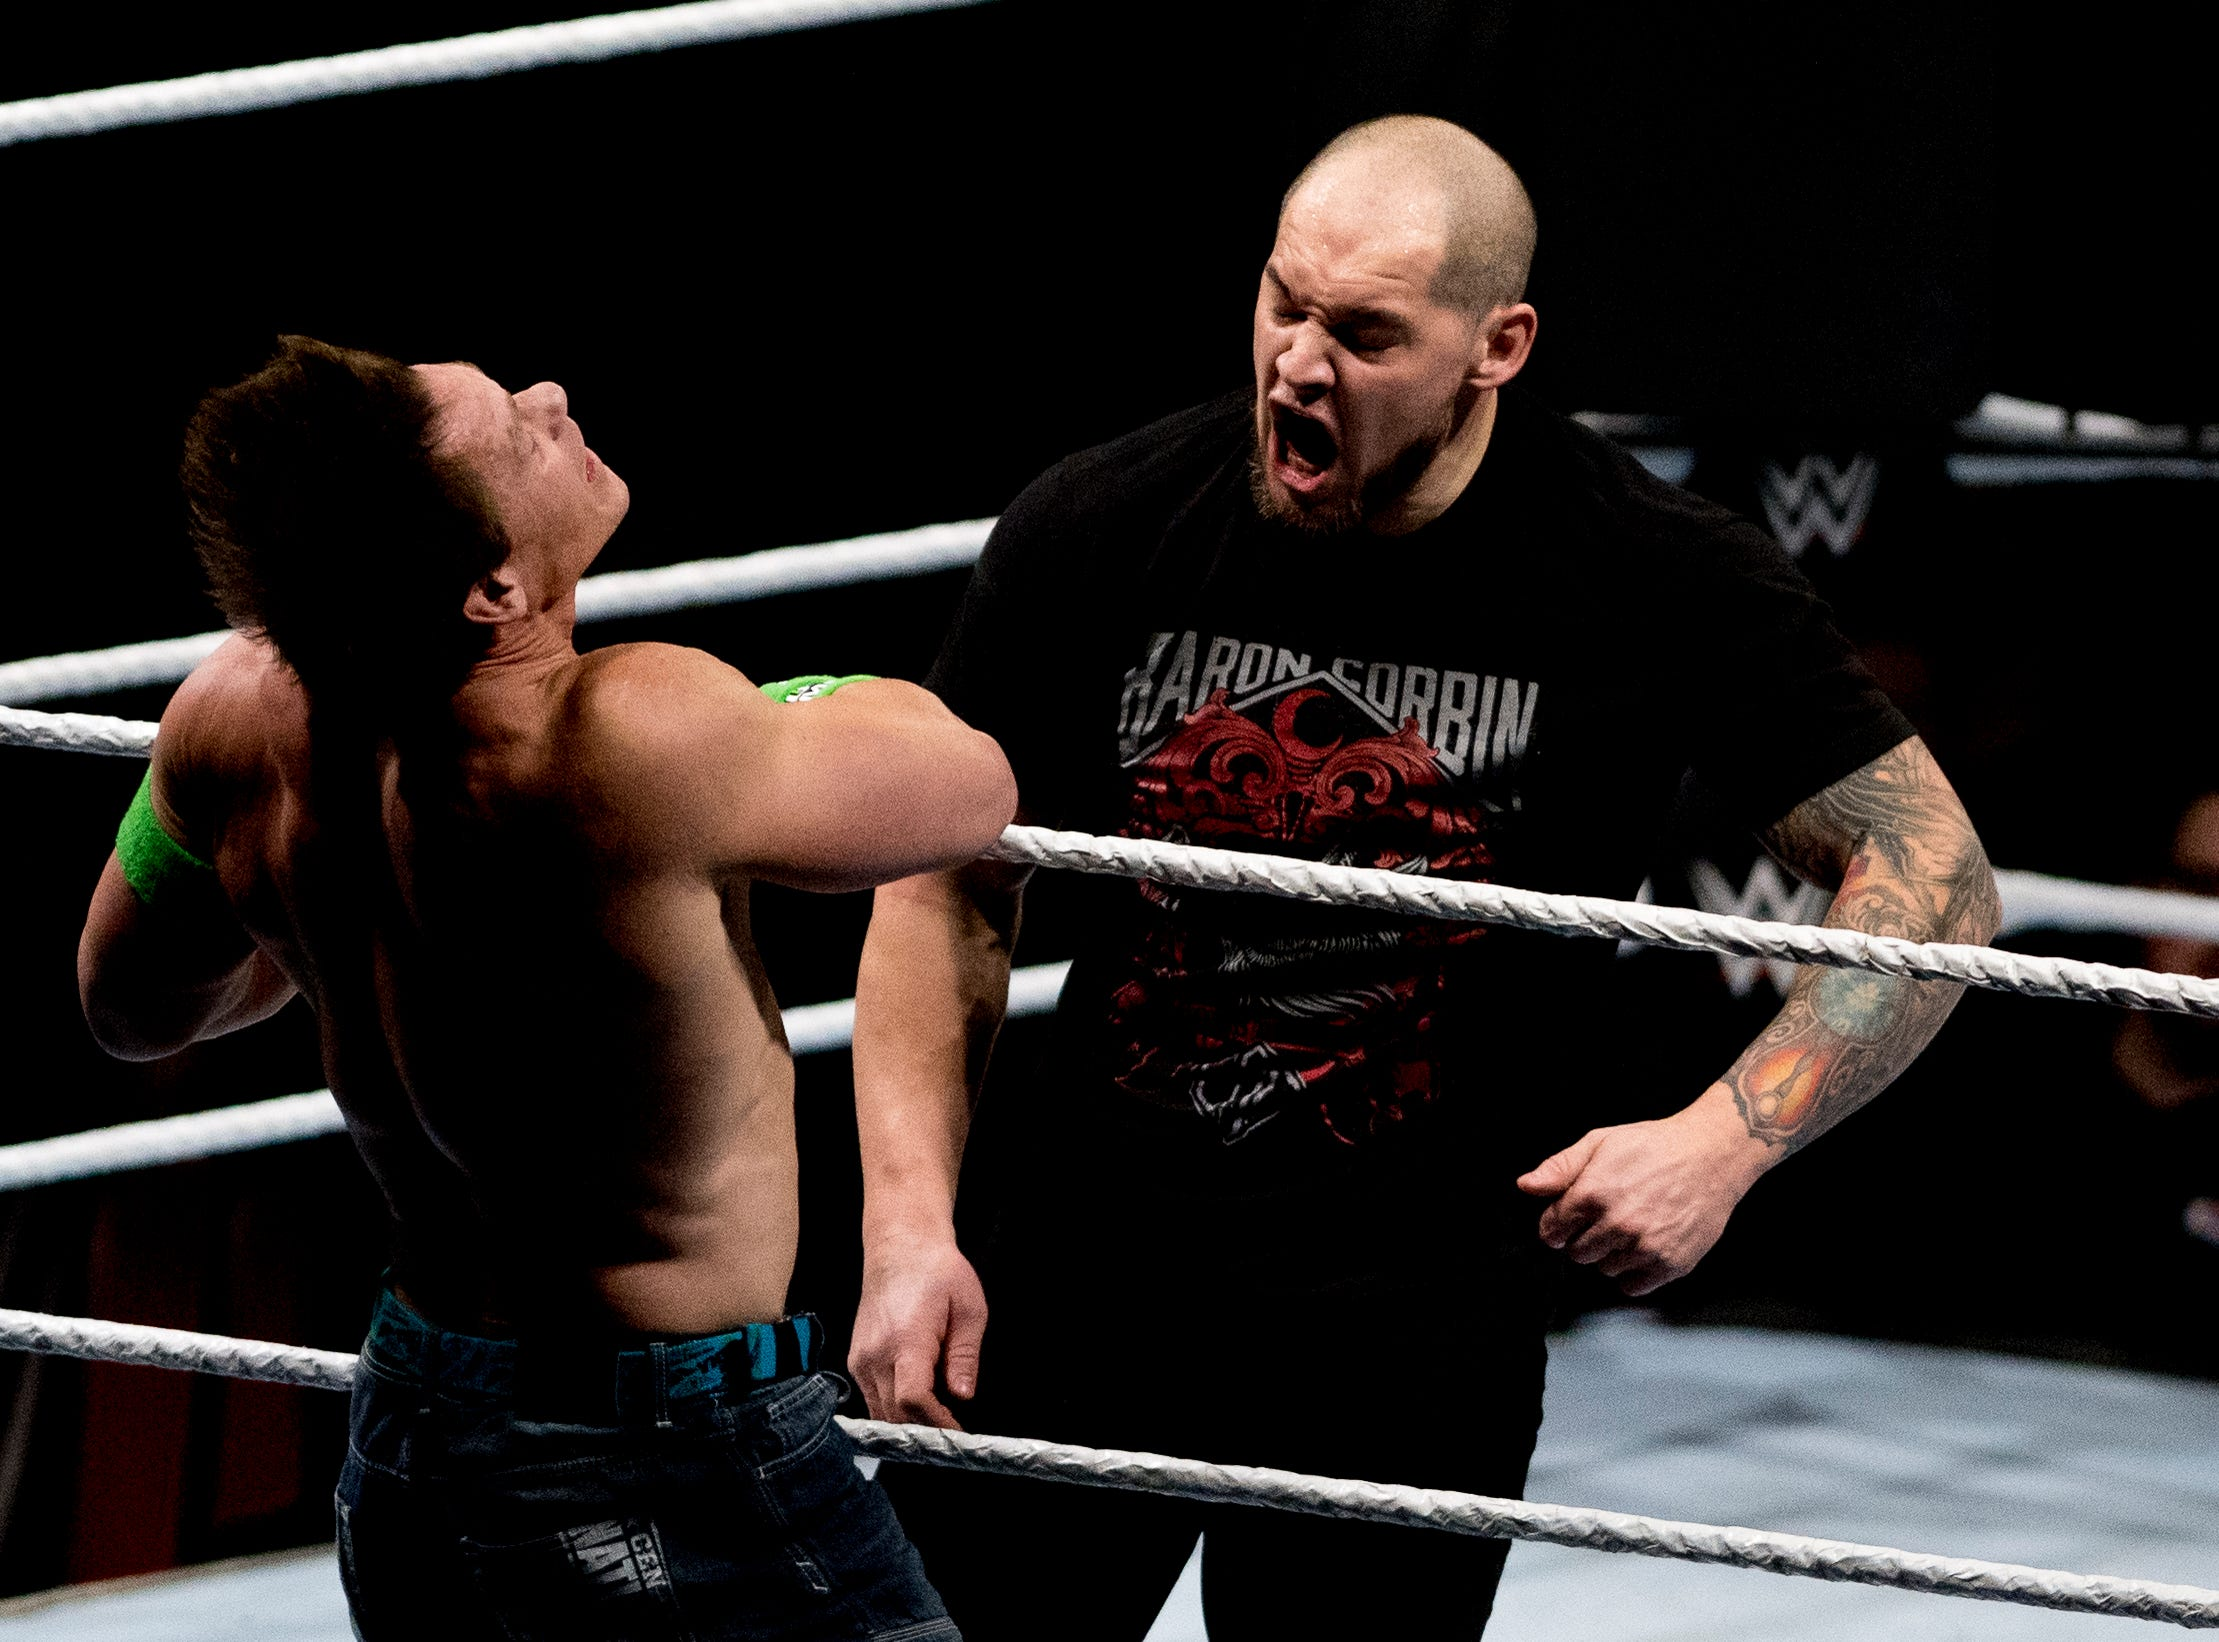 Baron Corbin hits John Cena during a WWE Live performance at the Knoxville Civic Coliseum in Knoxville, Tennessee on Saturday, January 12, 2019. *KNOXVILLE NEWS SENTINEL USE ONLY*